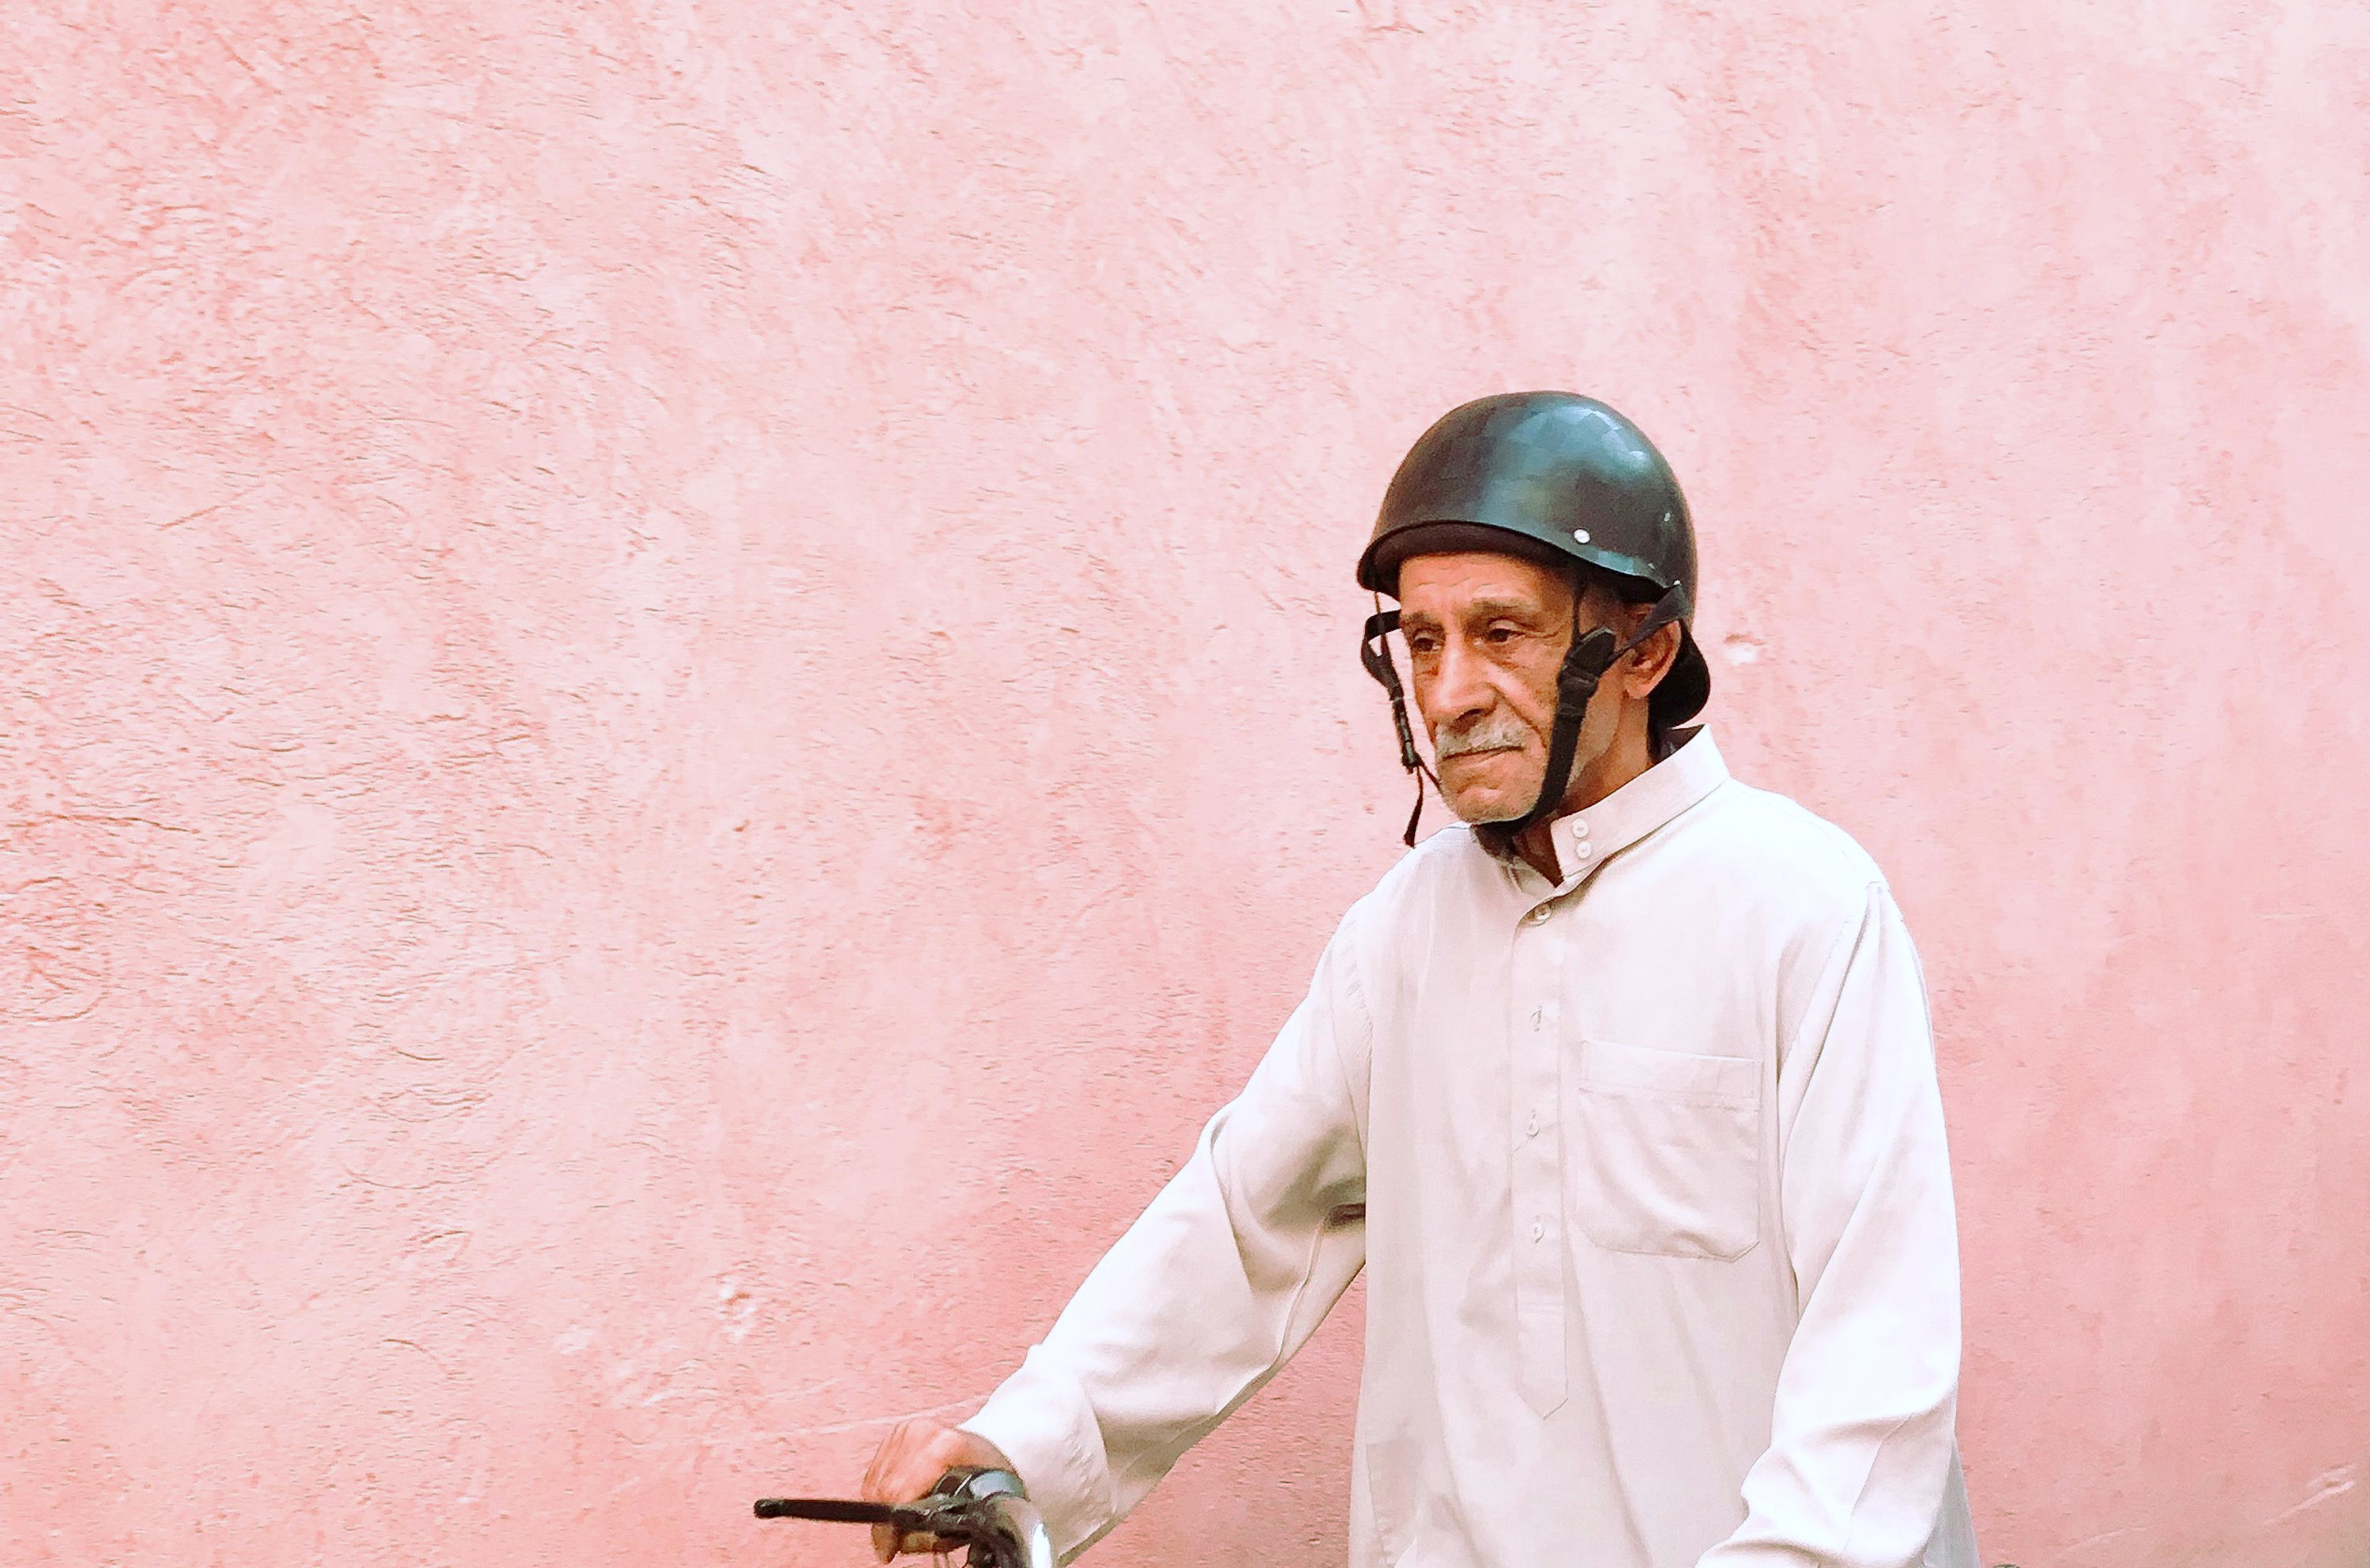 An older man dons a black rounded helmet as he rides his motorcycle near a pink wall.